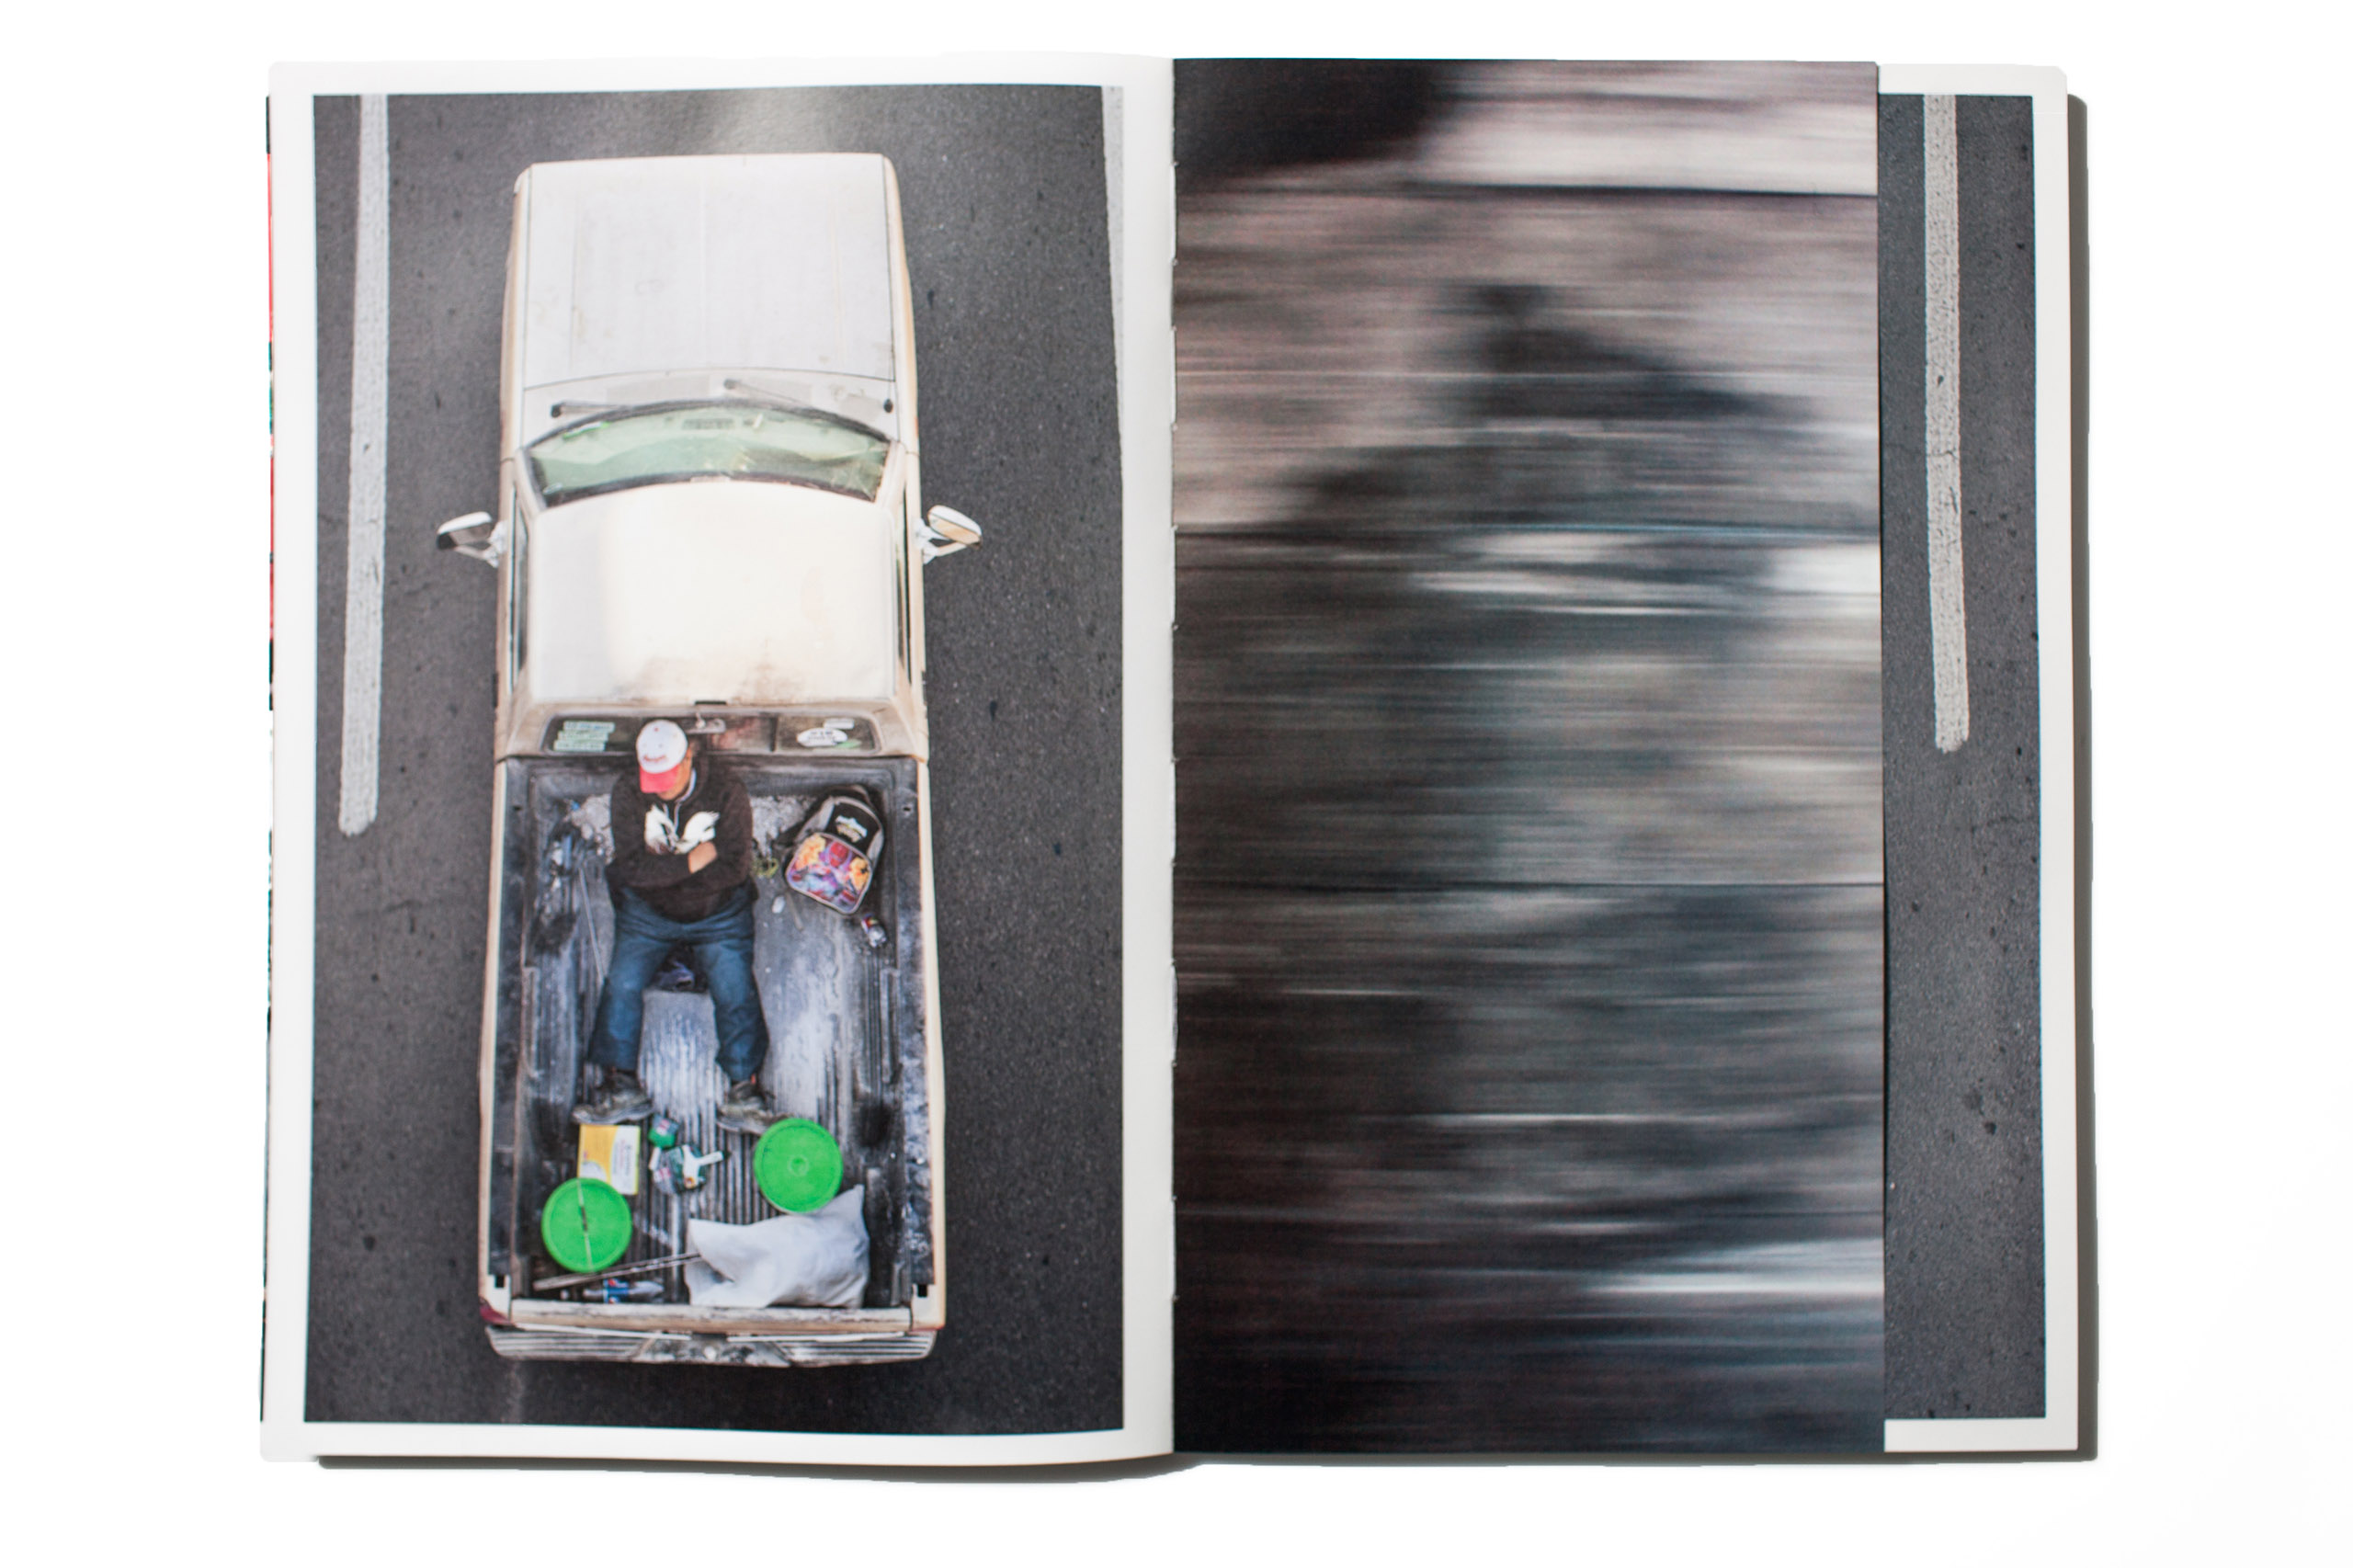 Although we have seen this work before, what a pleasure to see how this self published project, so cleverly combines the photos of the passing open plan trucks with their passengers laid out flat, but also the skies and scenes that can be viewed from the truck itself.                                                               -Martin Parr, Photographer at Magnum Photos